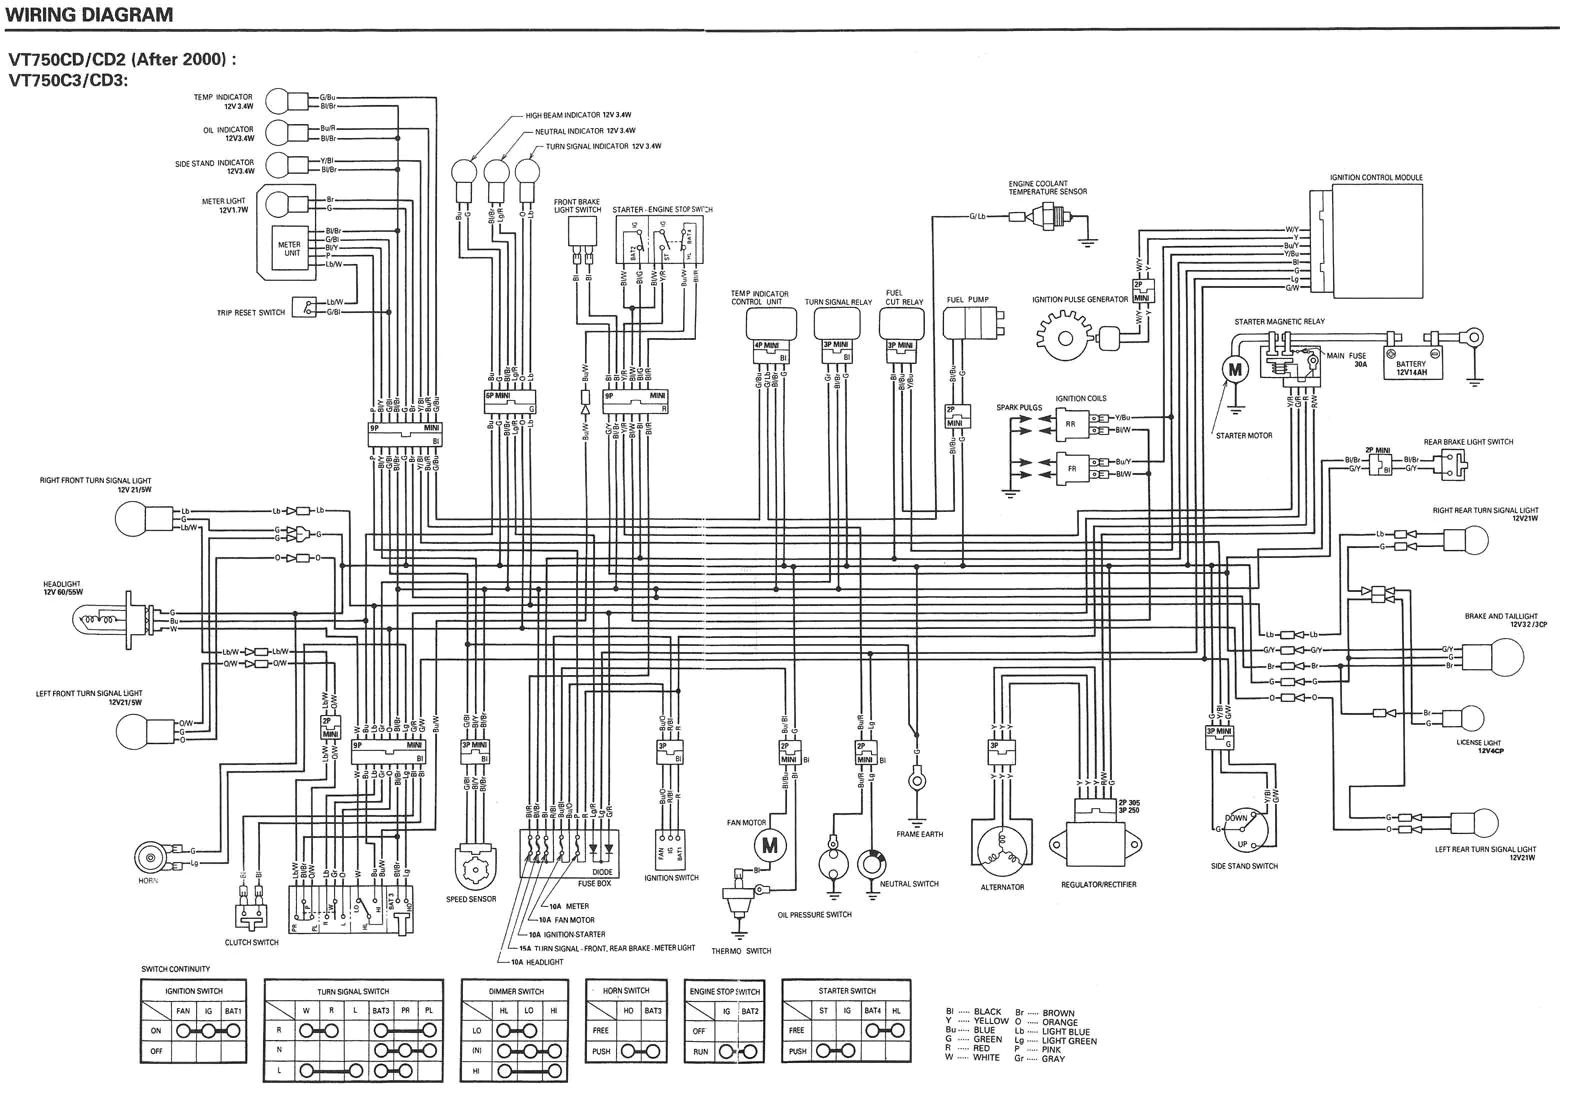 honda wiring schematics manual e book honda lower unit diagram honda circuit diagrams [ 1575 x 1106 Pixel ]